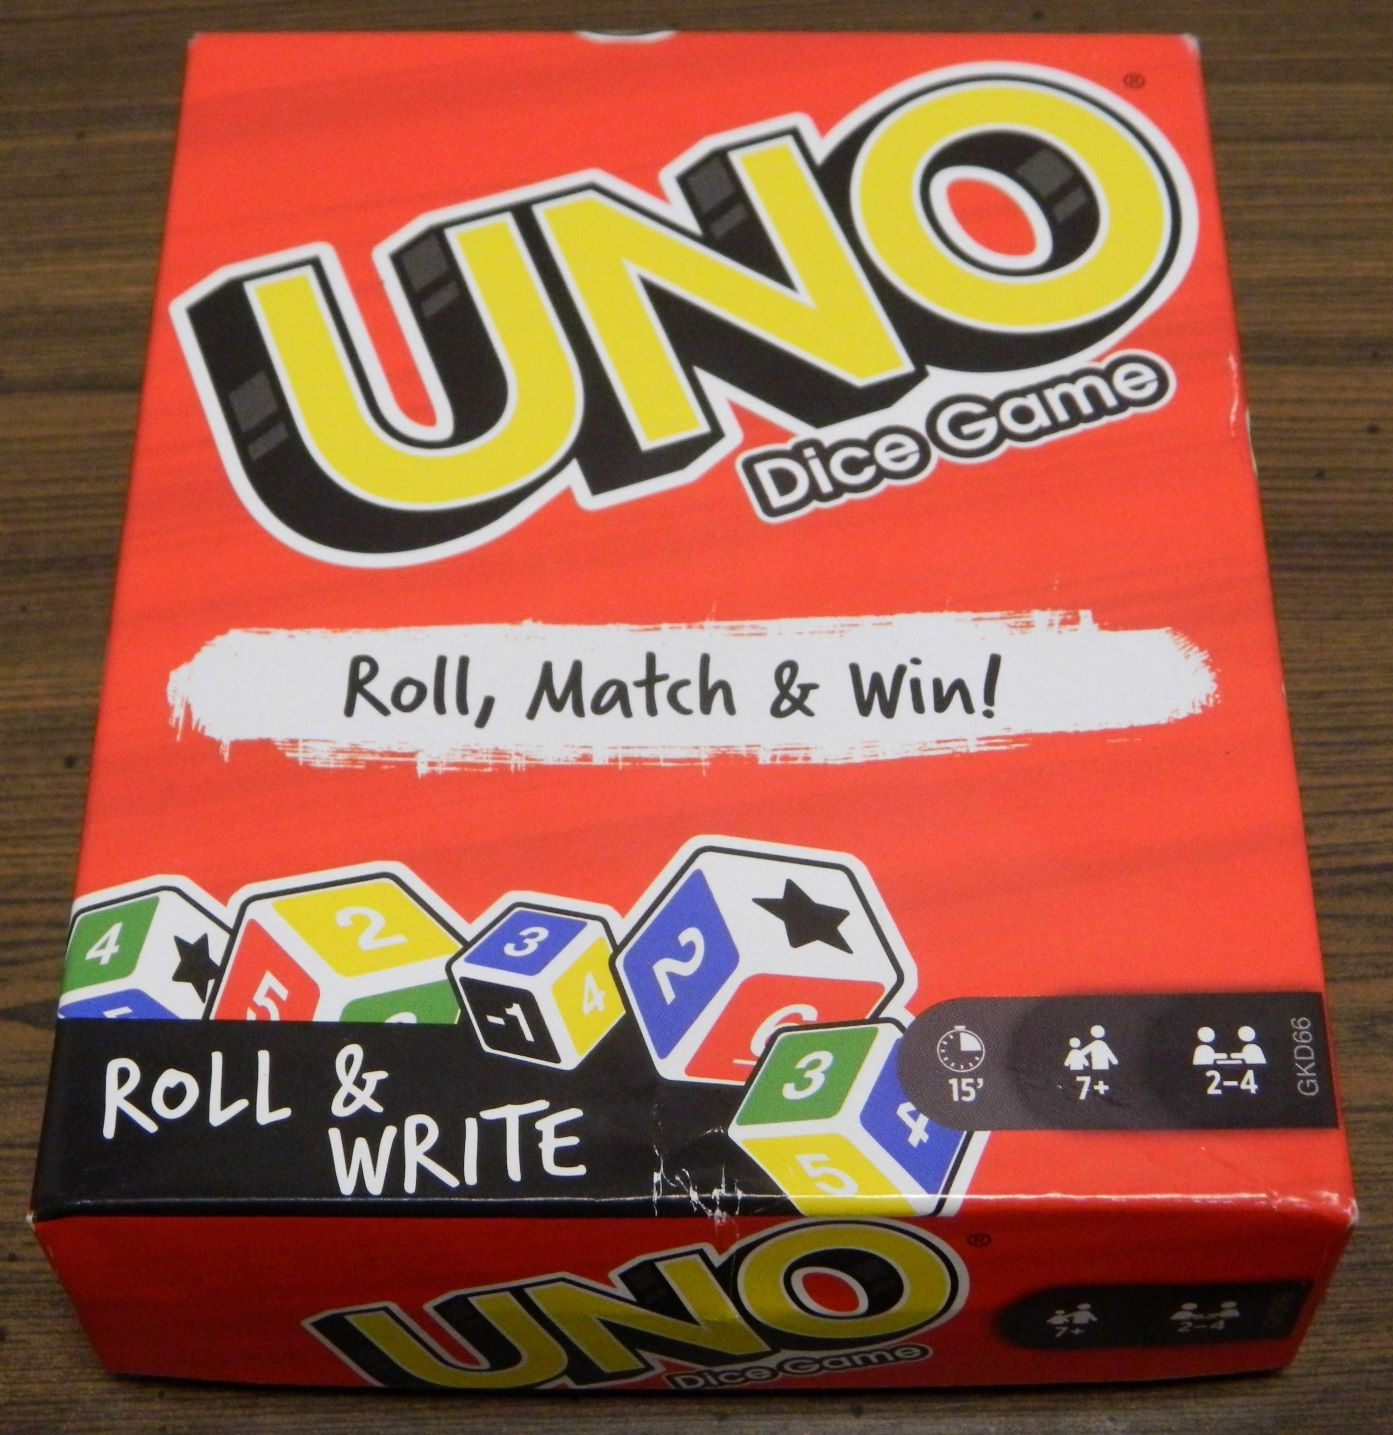 Box for UNO Dice Game Roll and Write